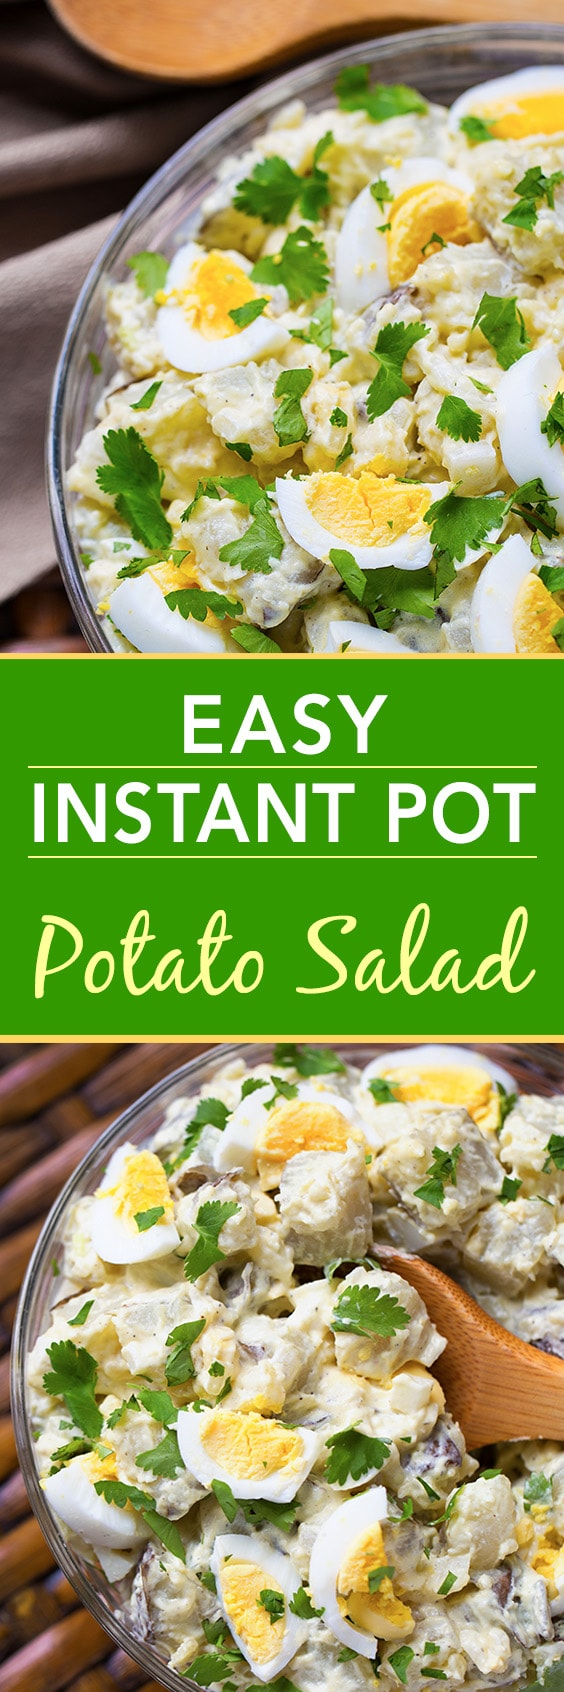 Easy Instant Pot Potato Salad is tasty and simple. Yay for the Instant Pot! simplyhappyfoodie.com